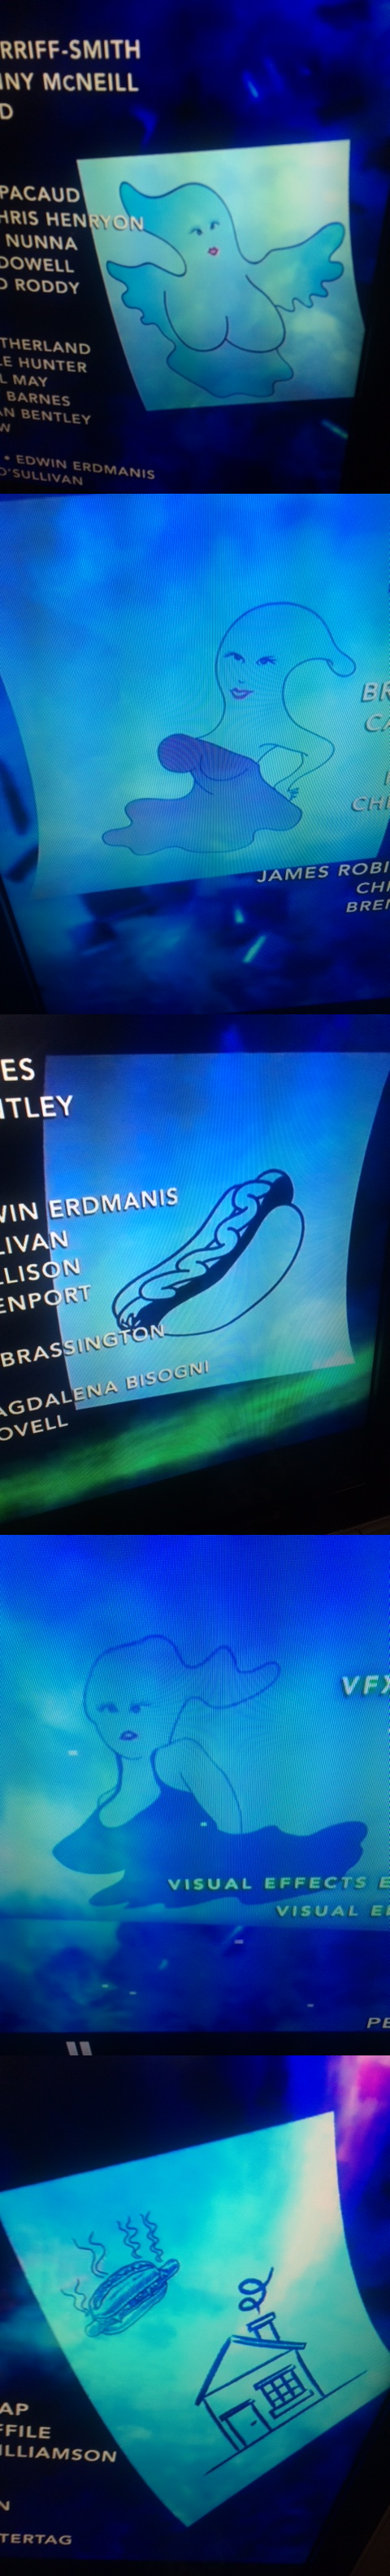 All of Kevin's logos in the Ghostbusters credits. by Ghostbustersmaniac